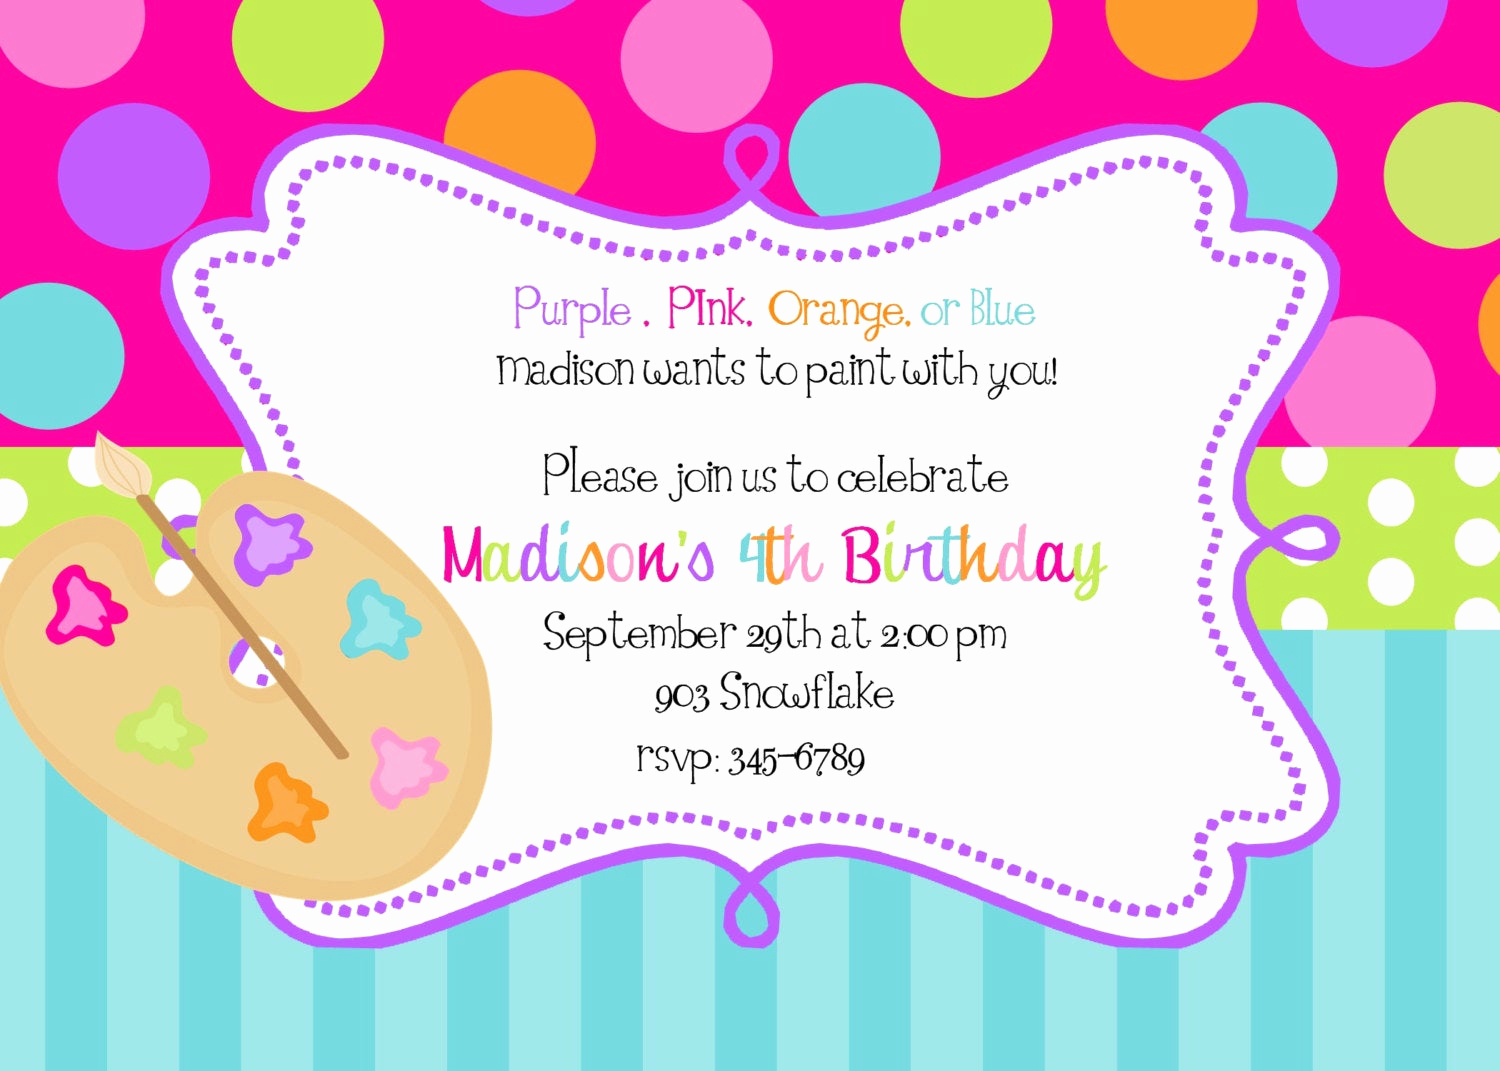 Paint Party Invitation Wording Unique Art Painting Birthday Party Invitations Art by Noteablechic